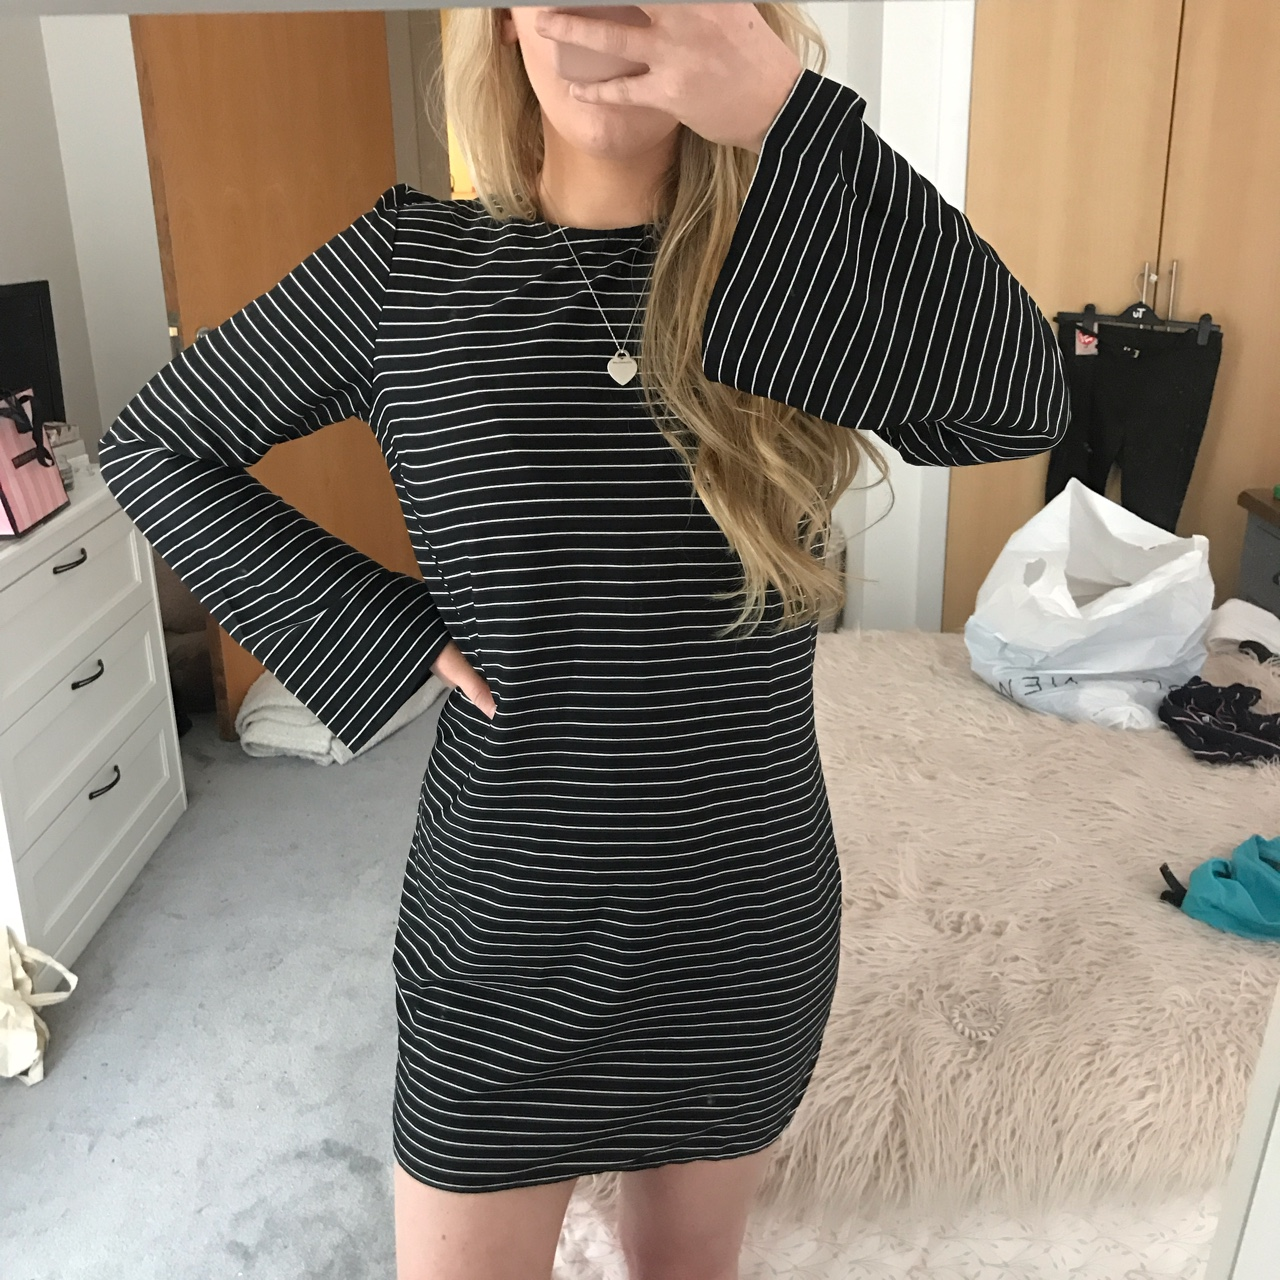 70s style black and white striped dress